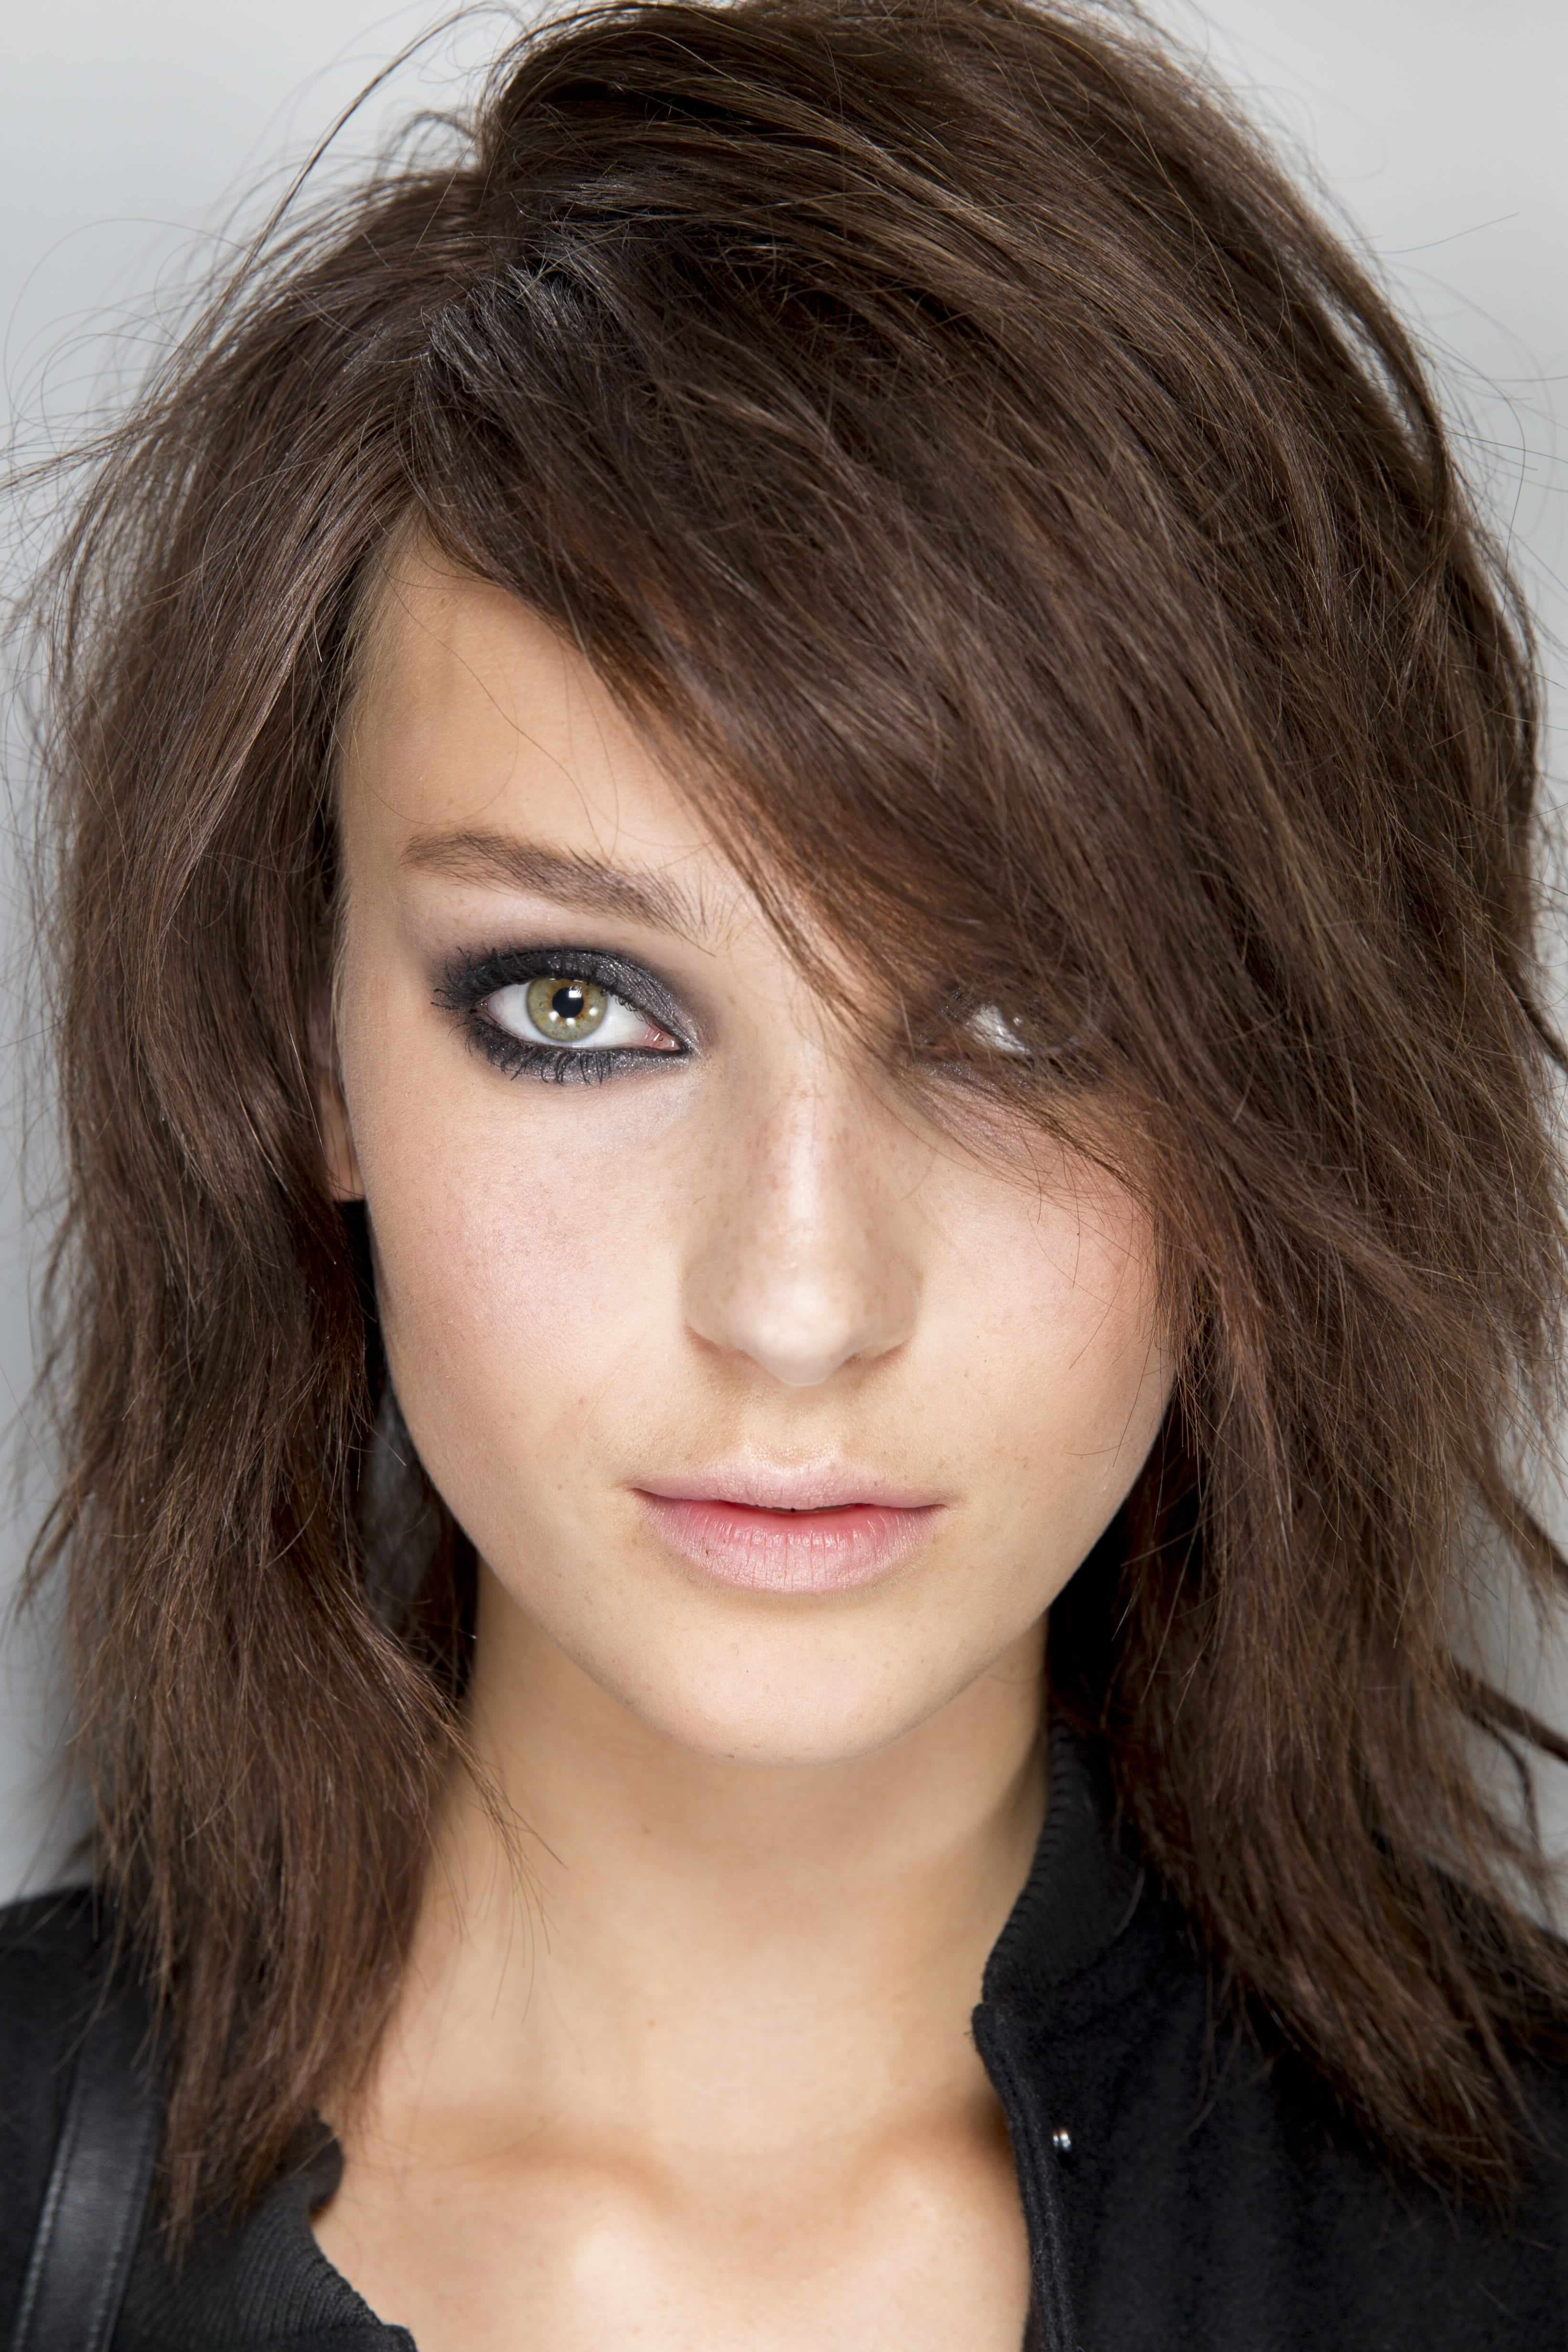 Short Hairstyles For Long Faces: The Most Flattering Cuts To Try Within Short Haircuts For Long Faces (View 14 of 25)